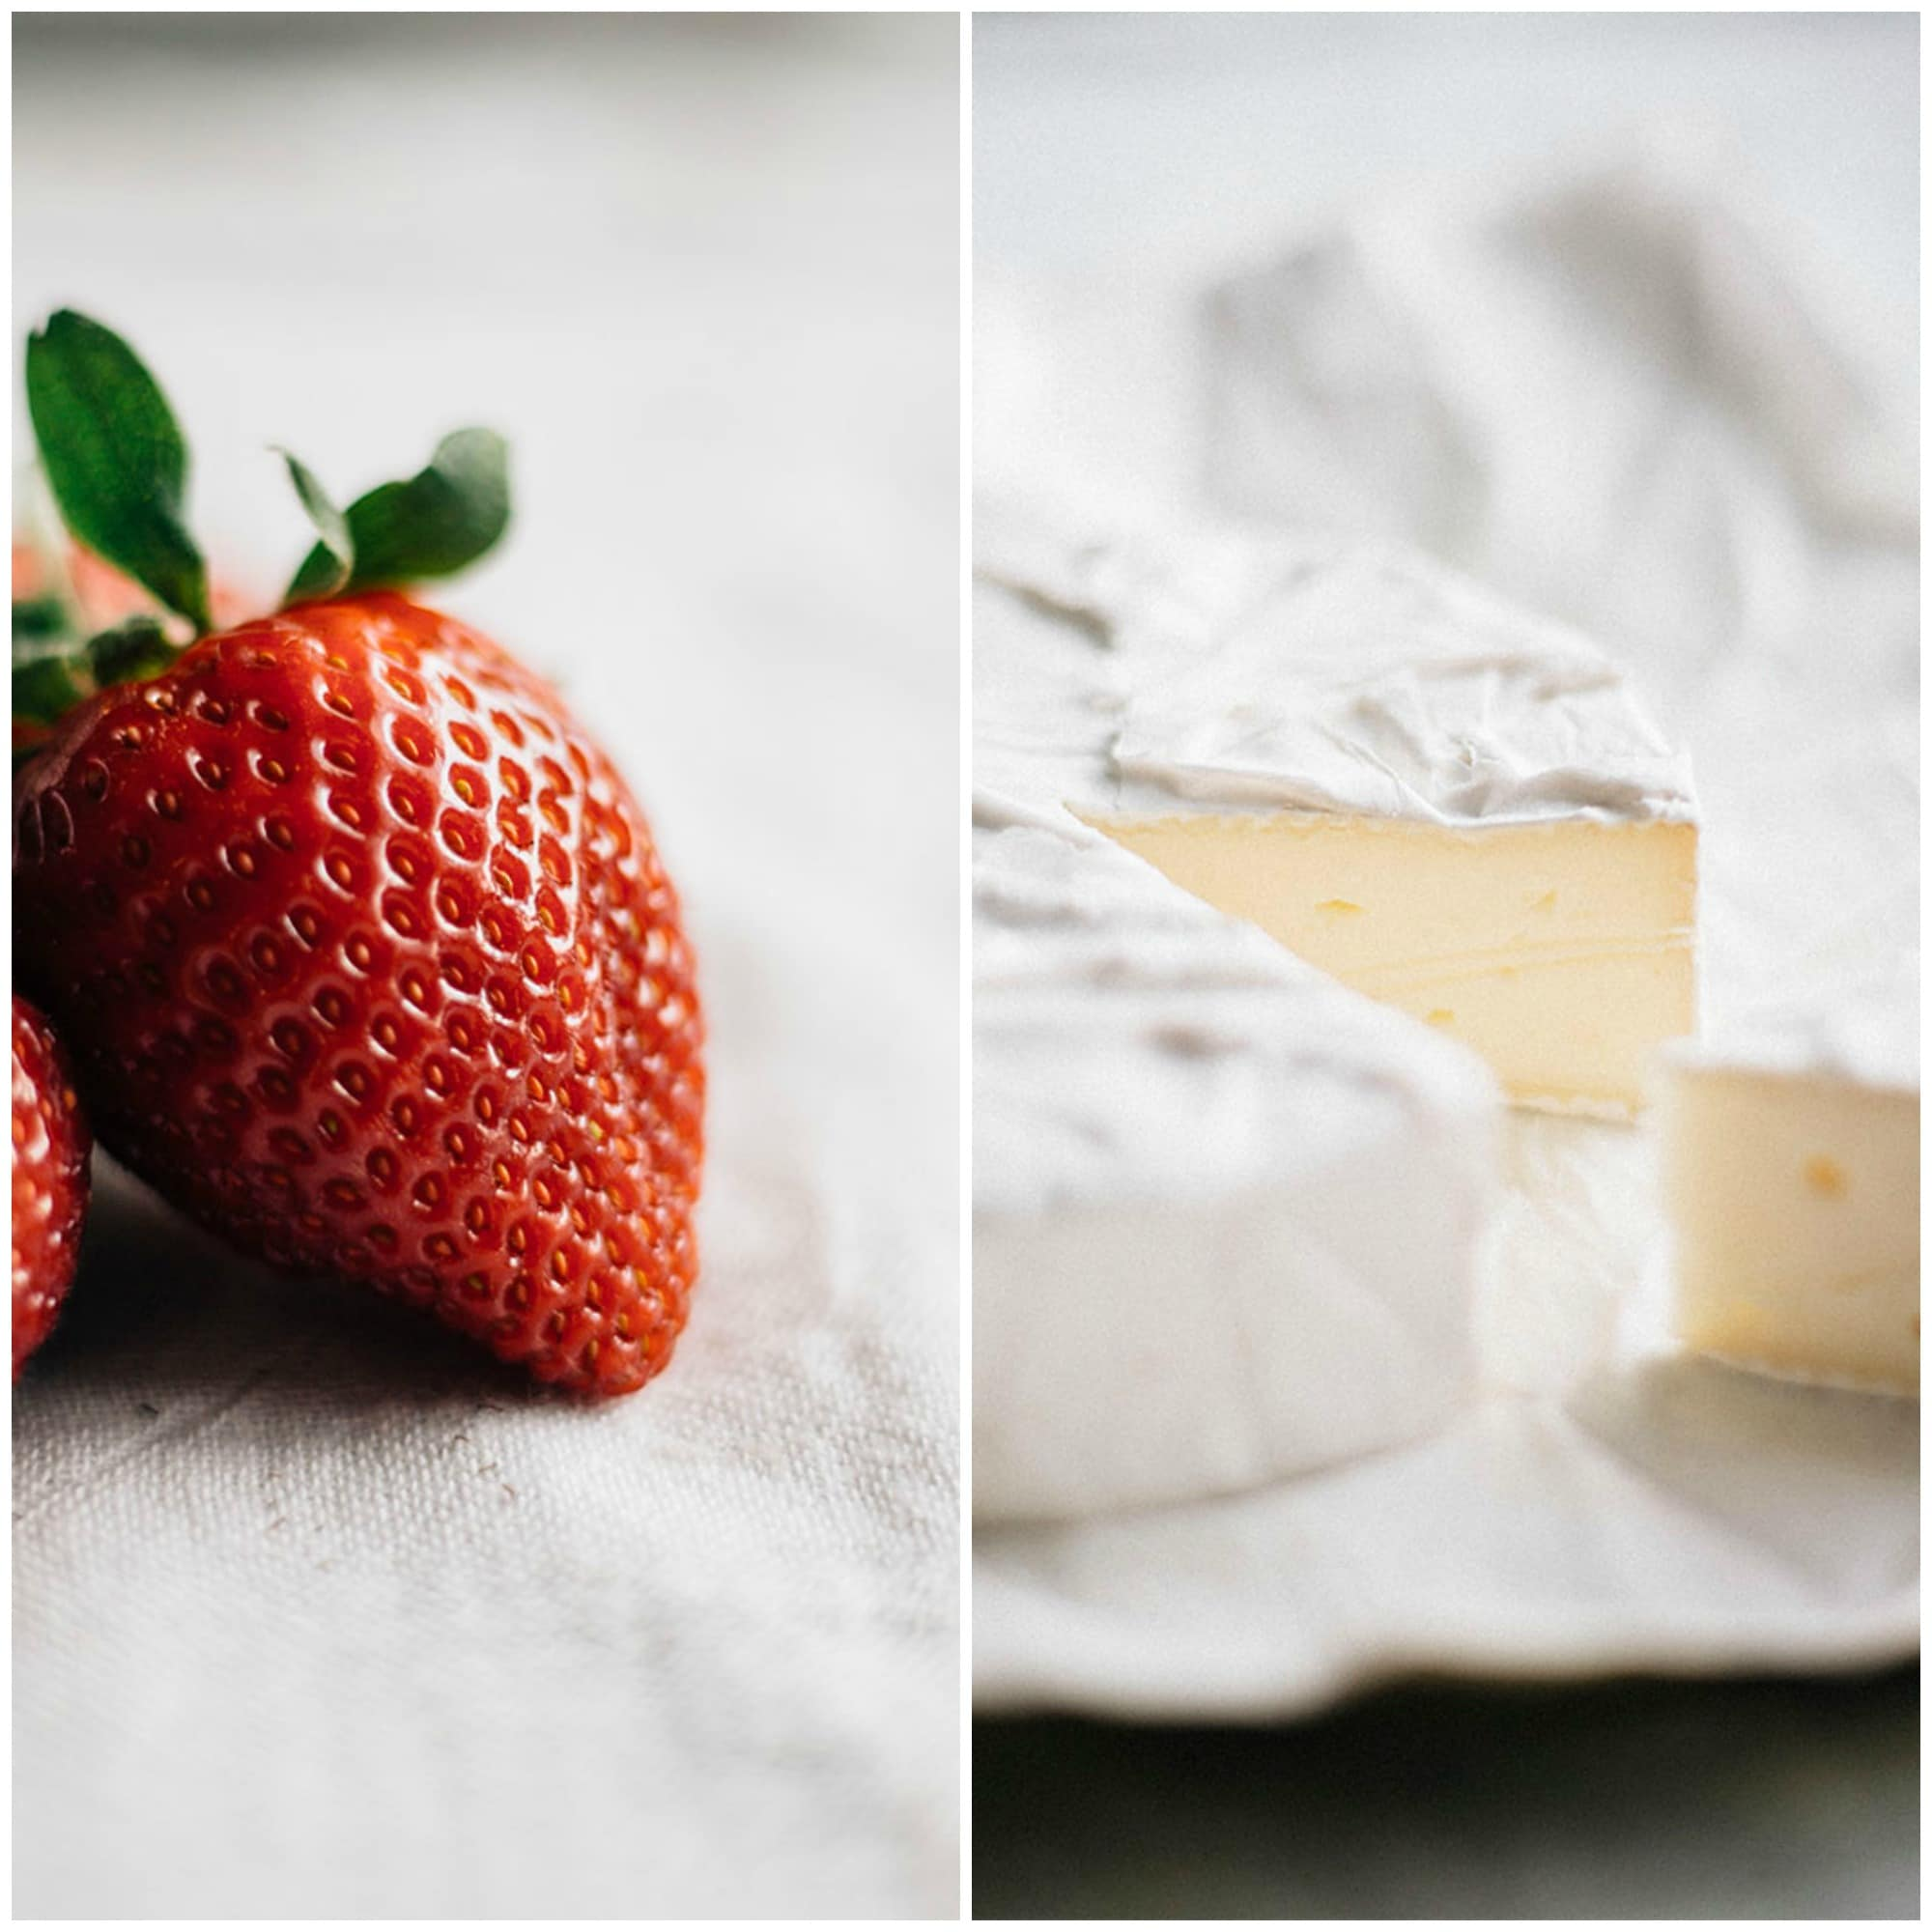 strawberries and brie cheese